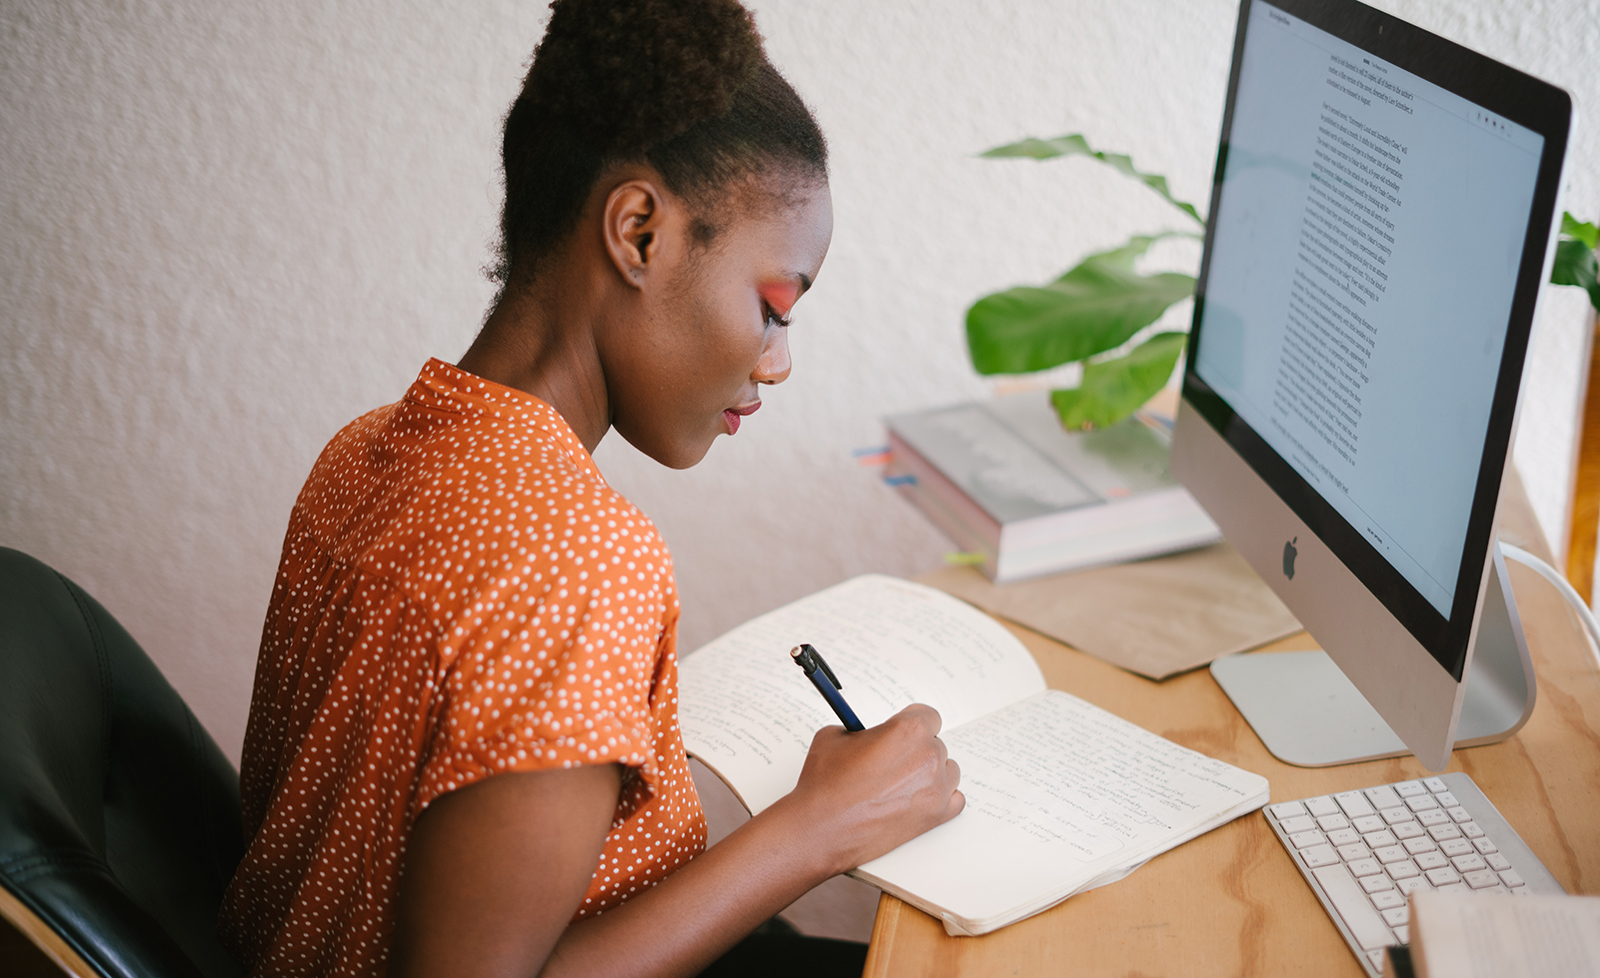 Top 5 Online Resources for Writers